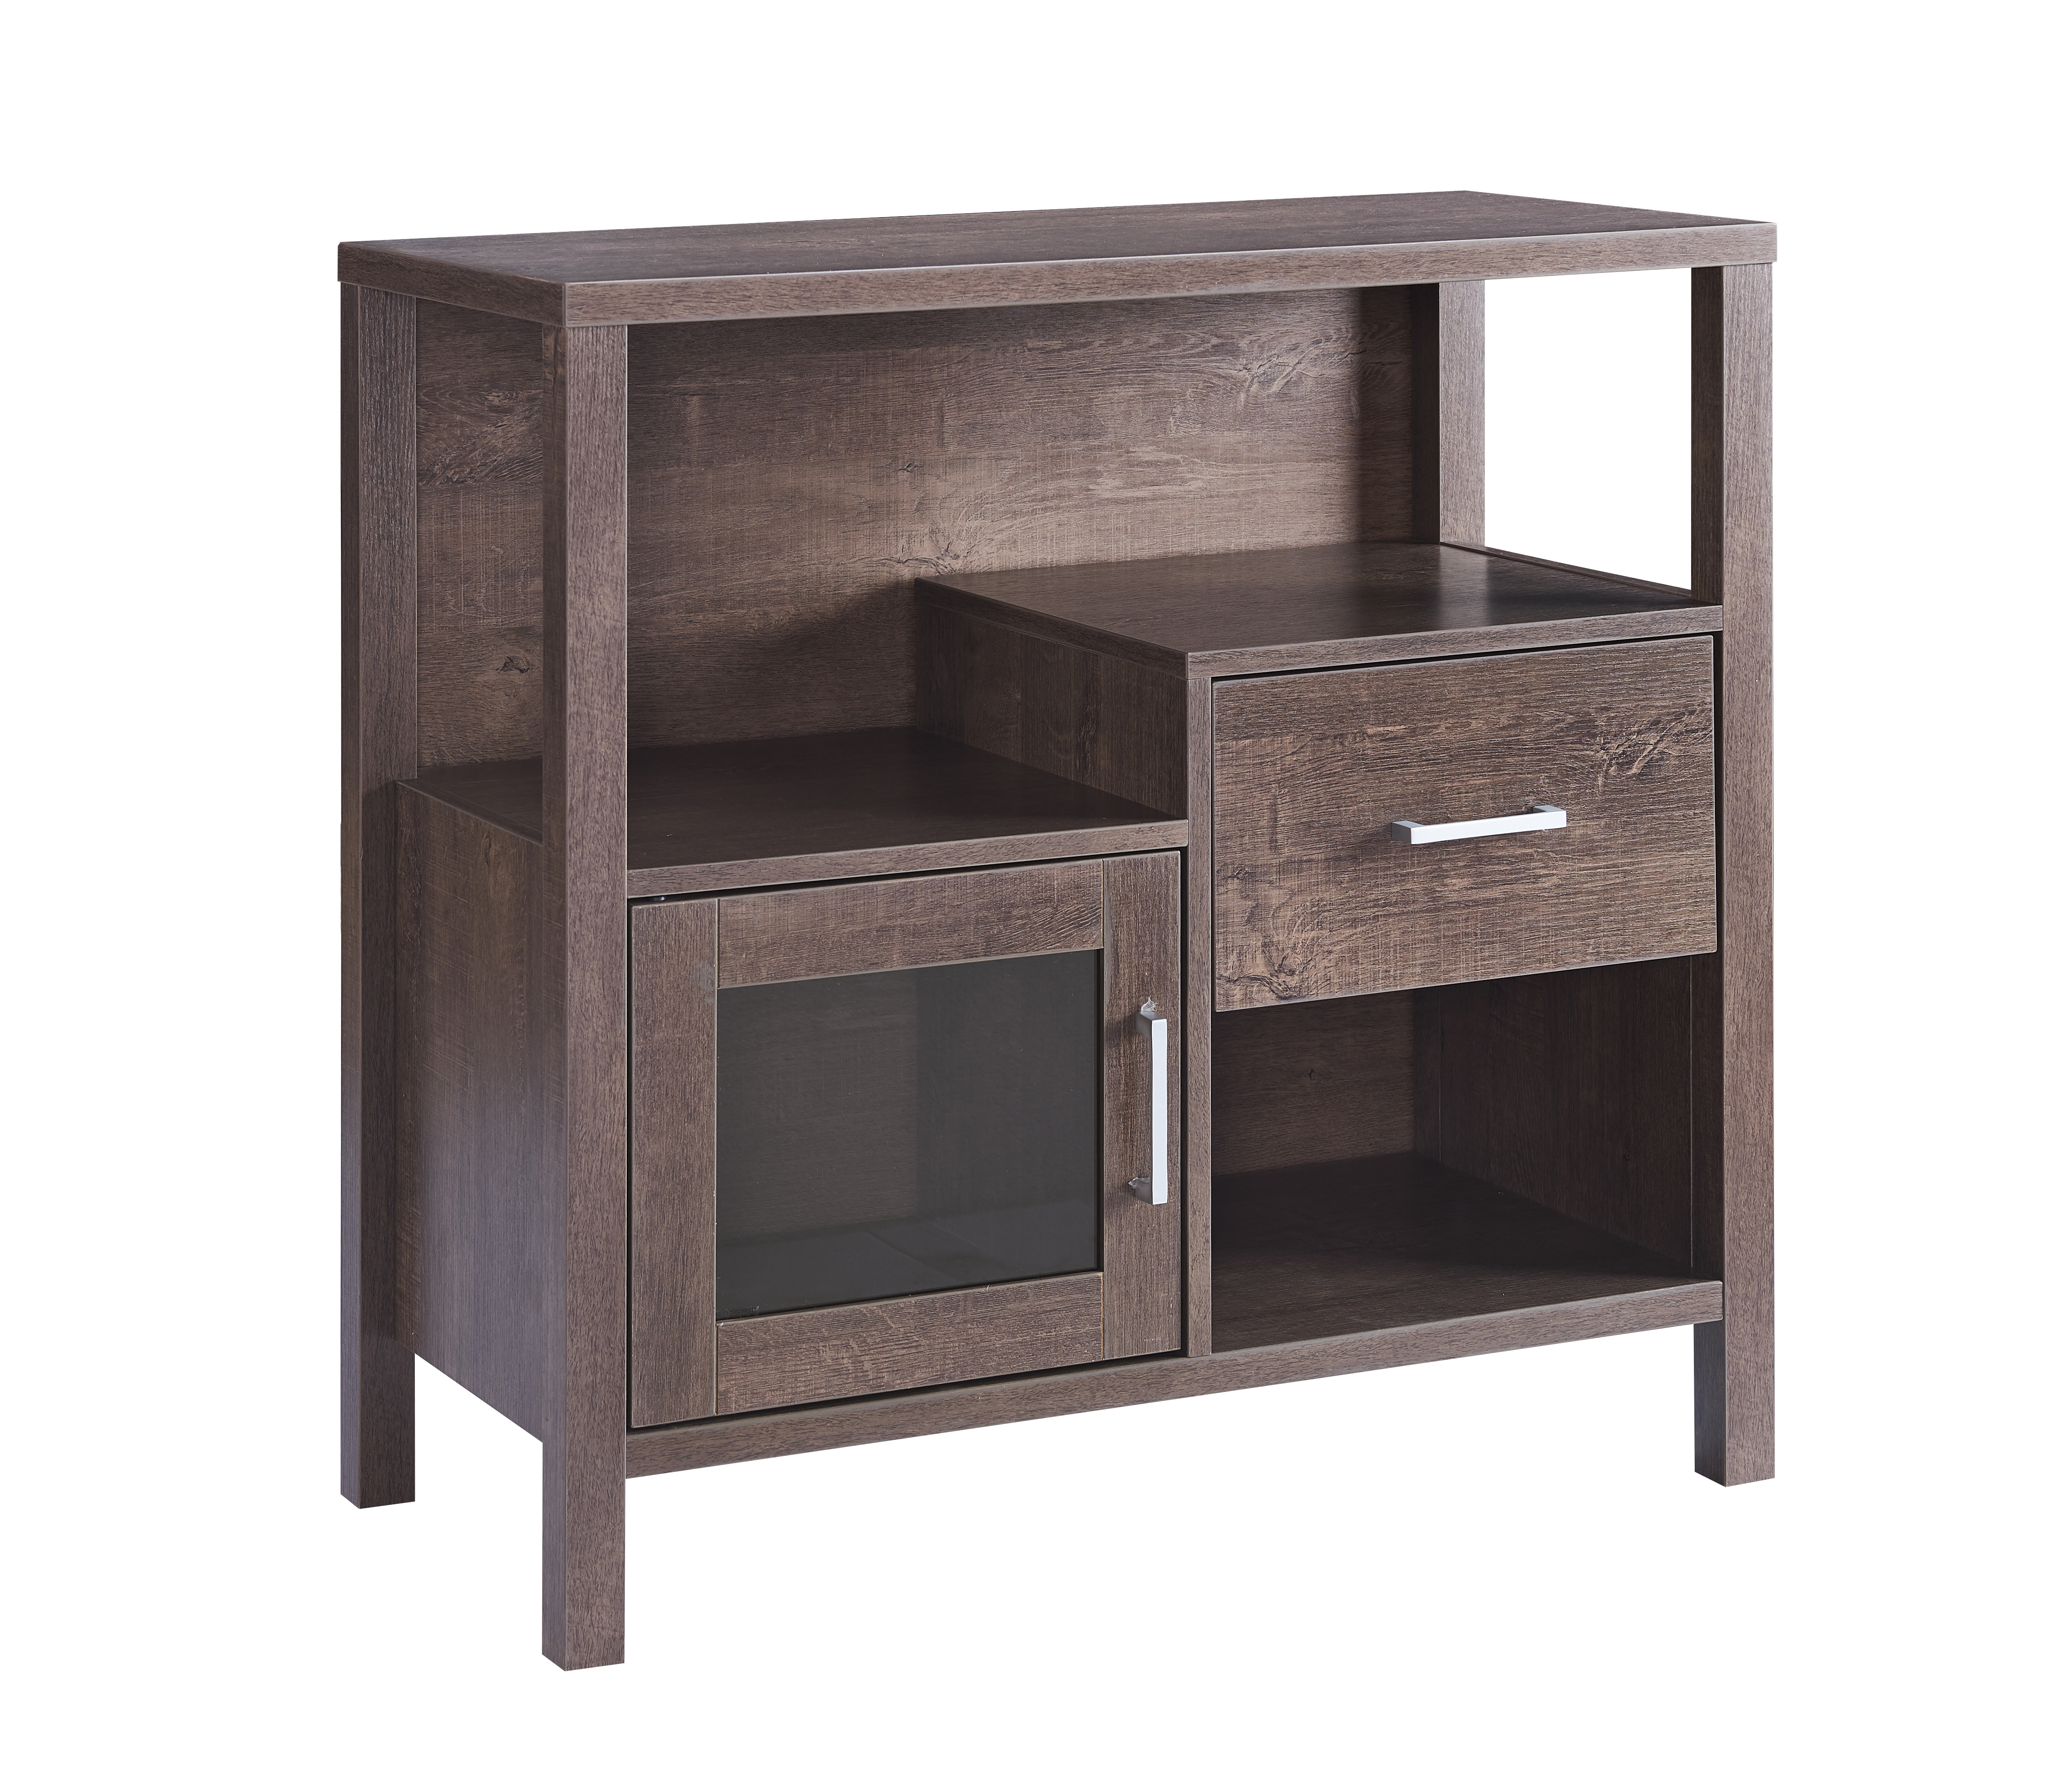 STORAGE CABINET - WALNUT OAK